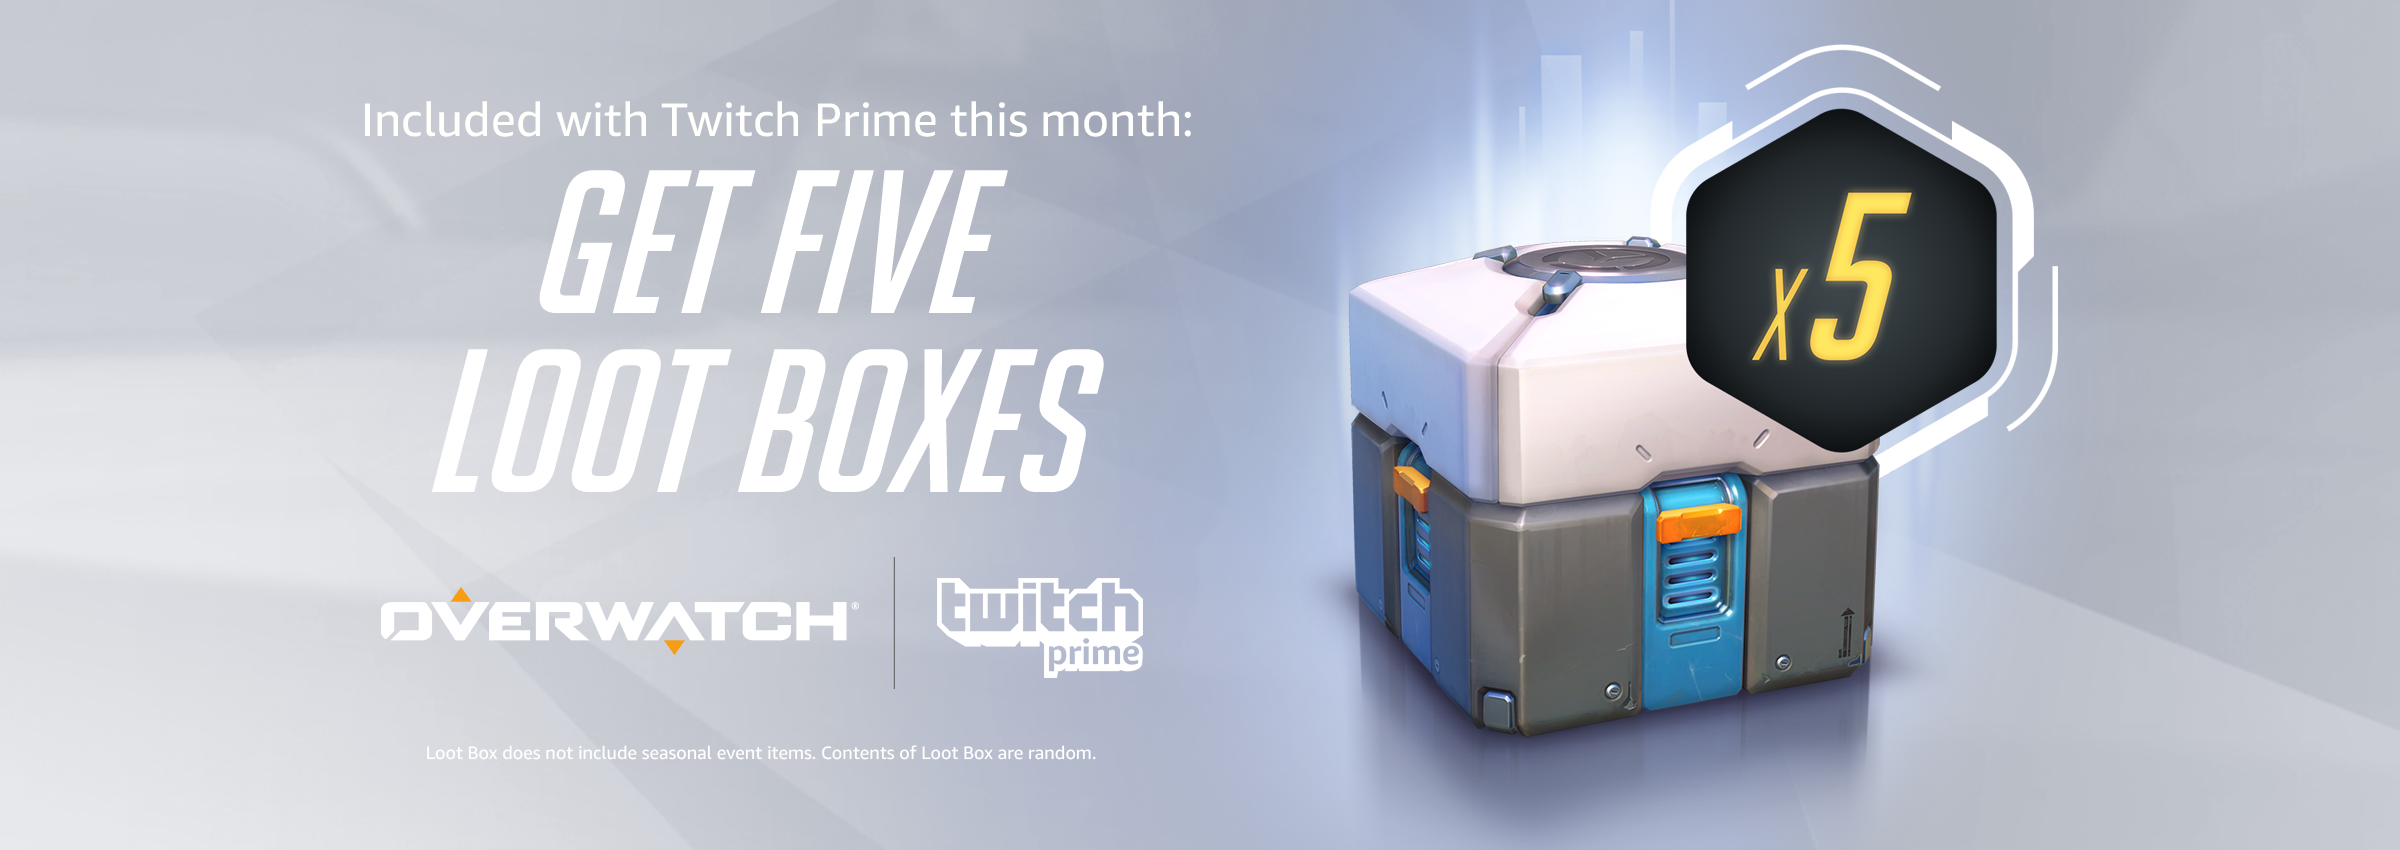 Overwatch-5 Loot Boxes (Twitch Prime) Key(Oct10-Nov10)